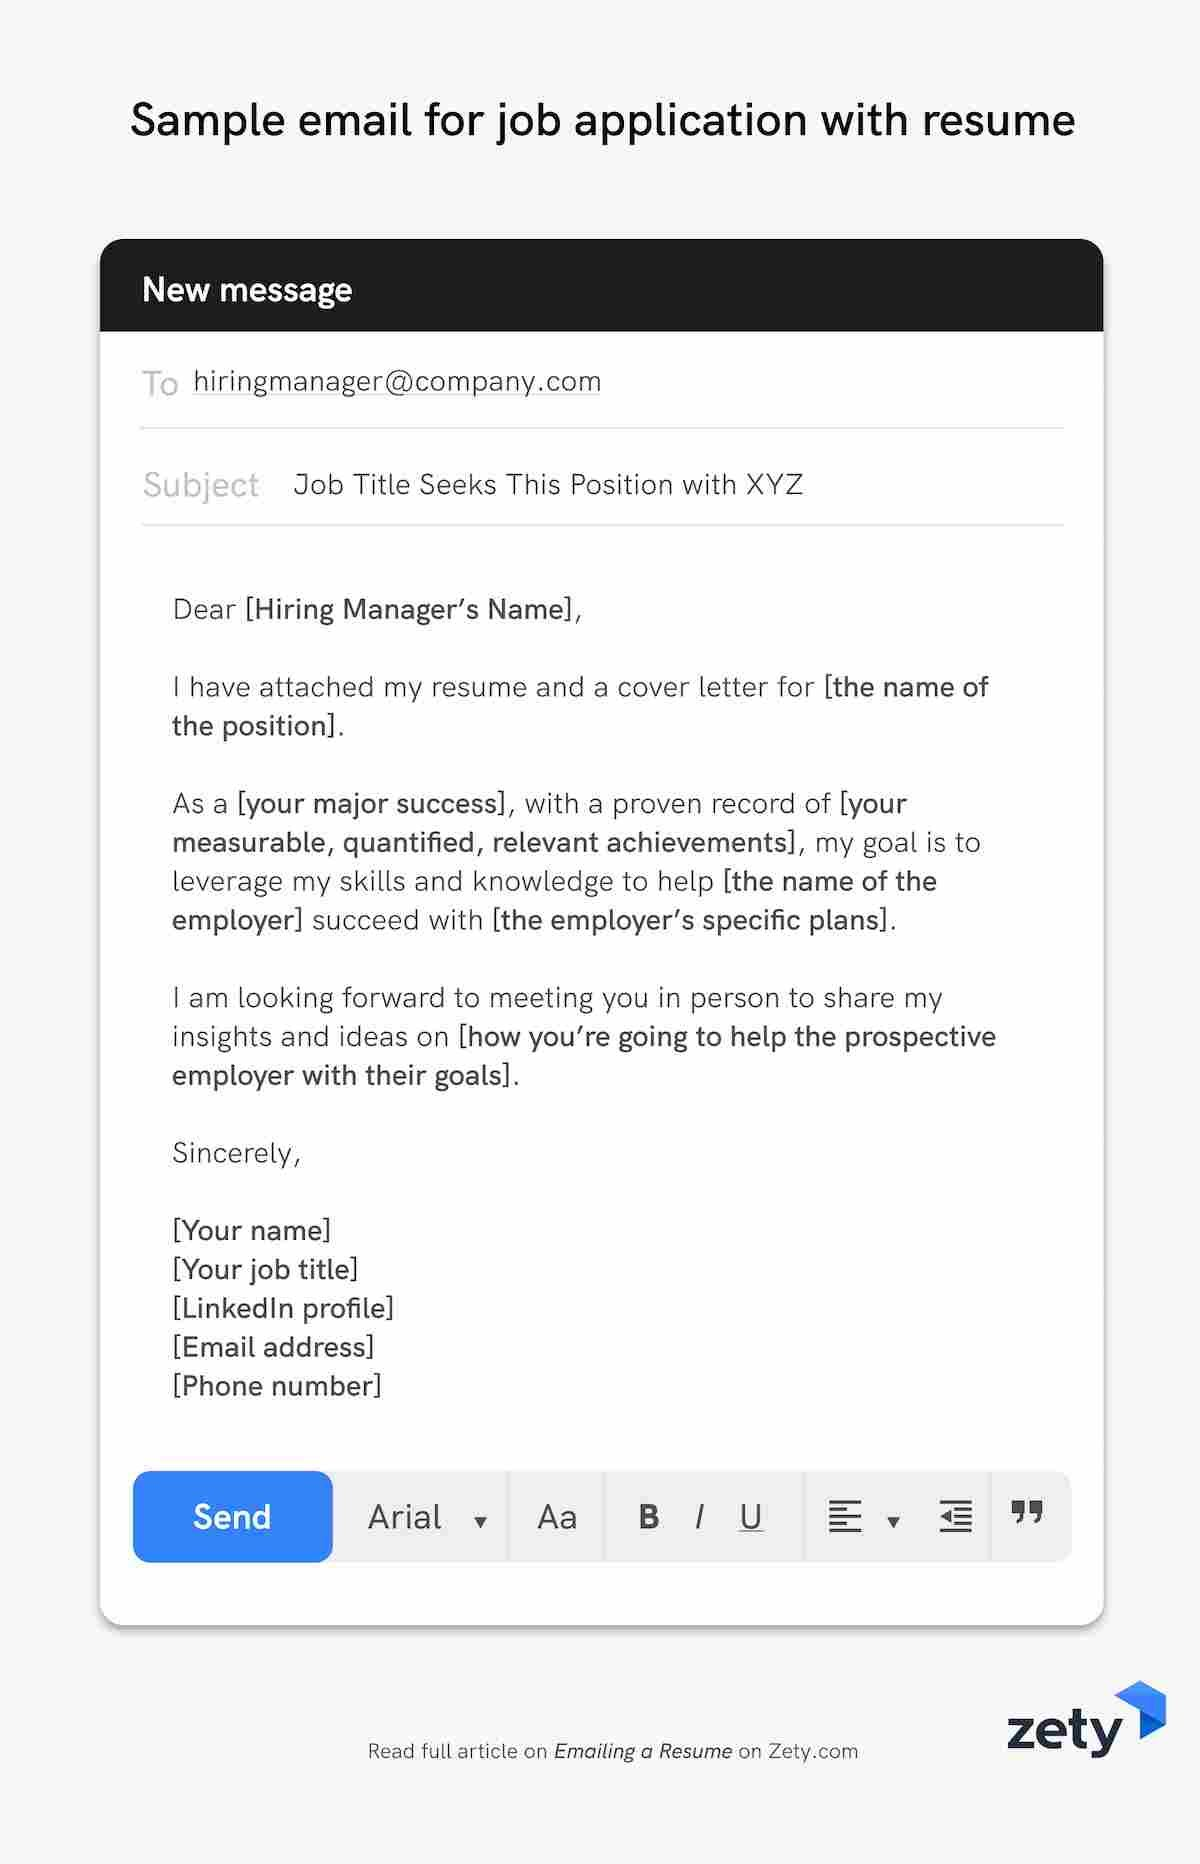 emailing resume job application email samples send for format sample with ikea works well Resume Send Resume For Job Email Format